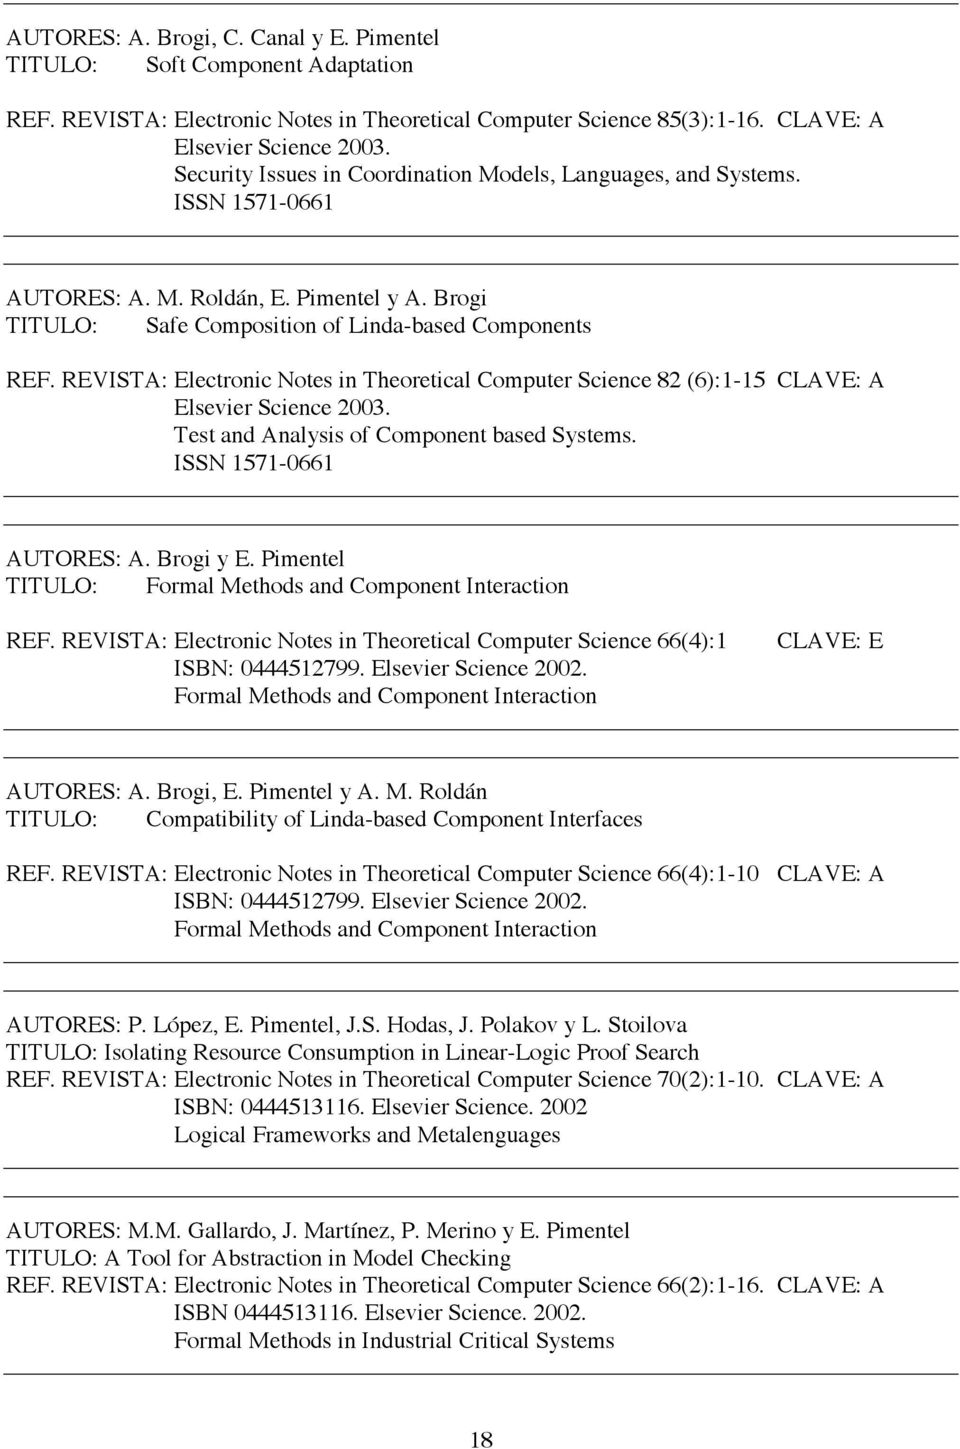 REVISTA: Electronic Notes in Theoretical Computer Science 82 (6):1-15 CLAVE: A Elsevier Science 2003. Test and Analysis of Component based Systems. ISSN 1571-0661 AUTORES: A. Brogi y E.